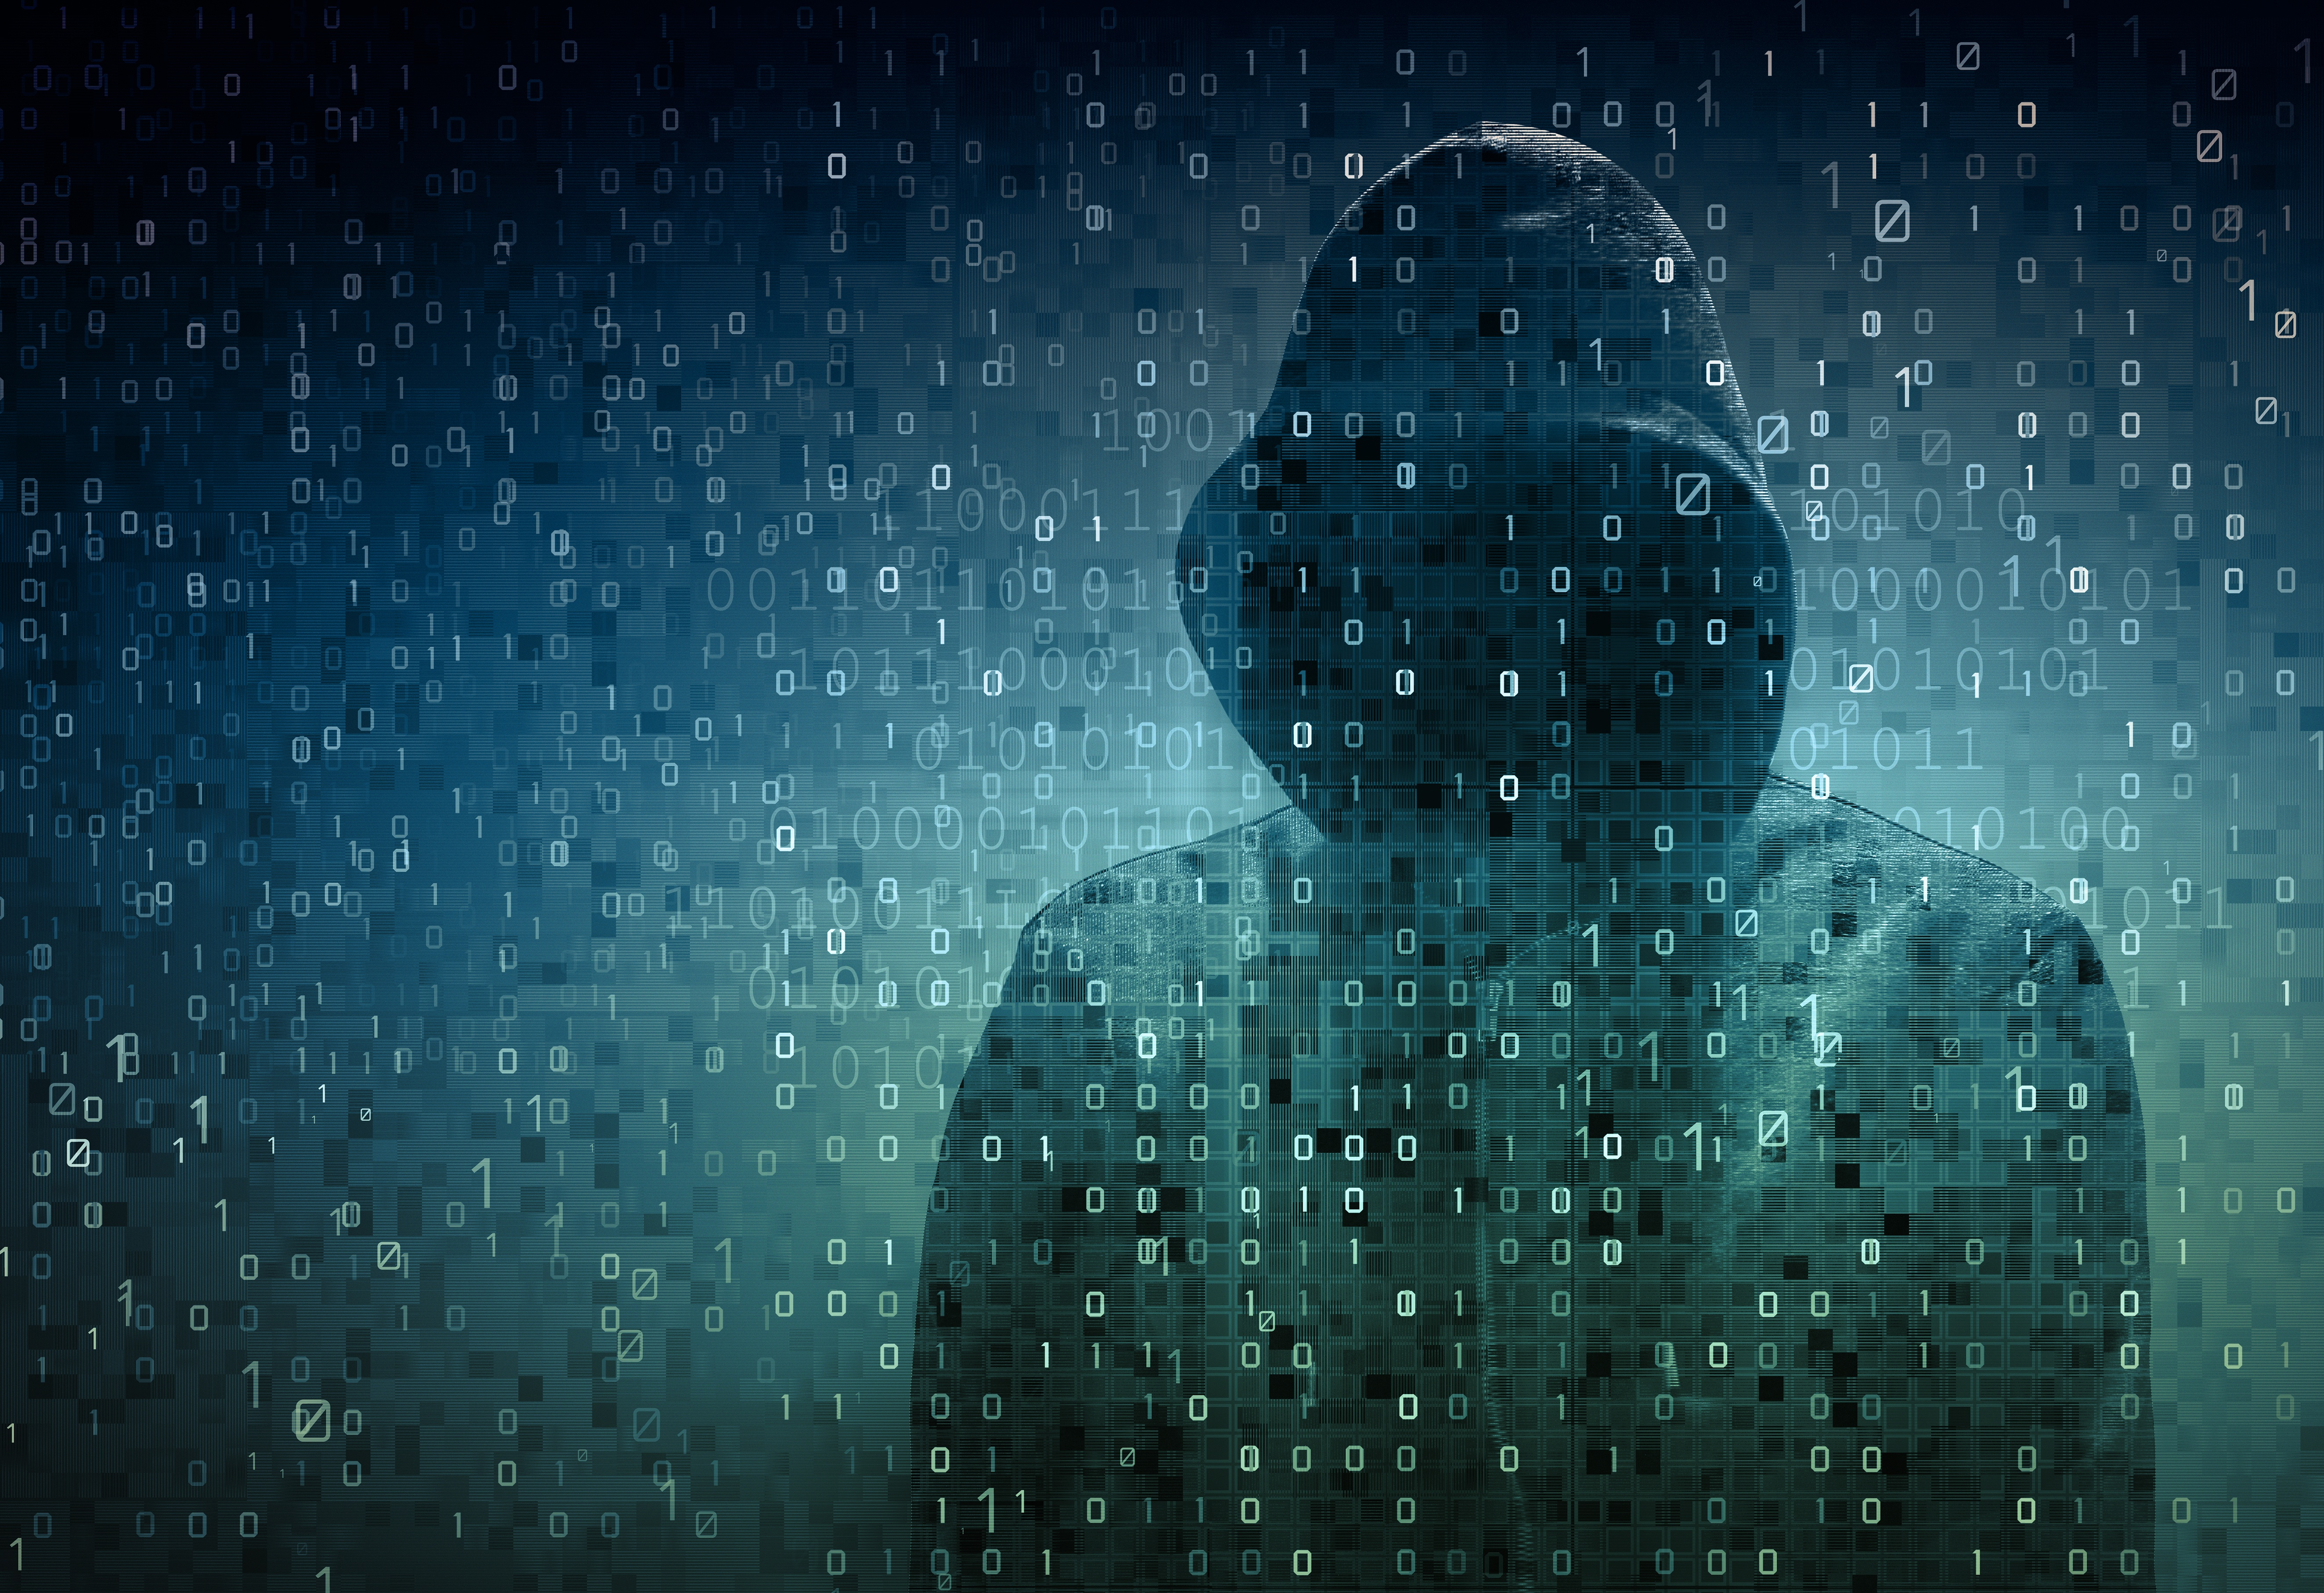 Ways to Improve Cybersecurity Awareness and Training